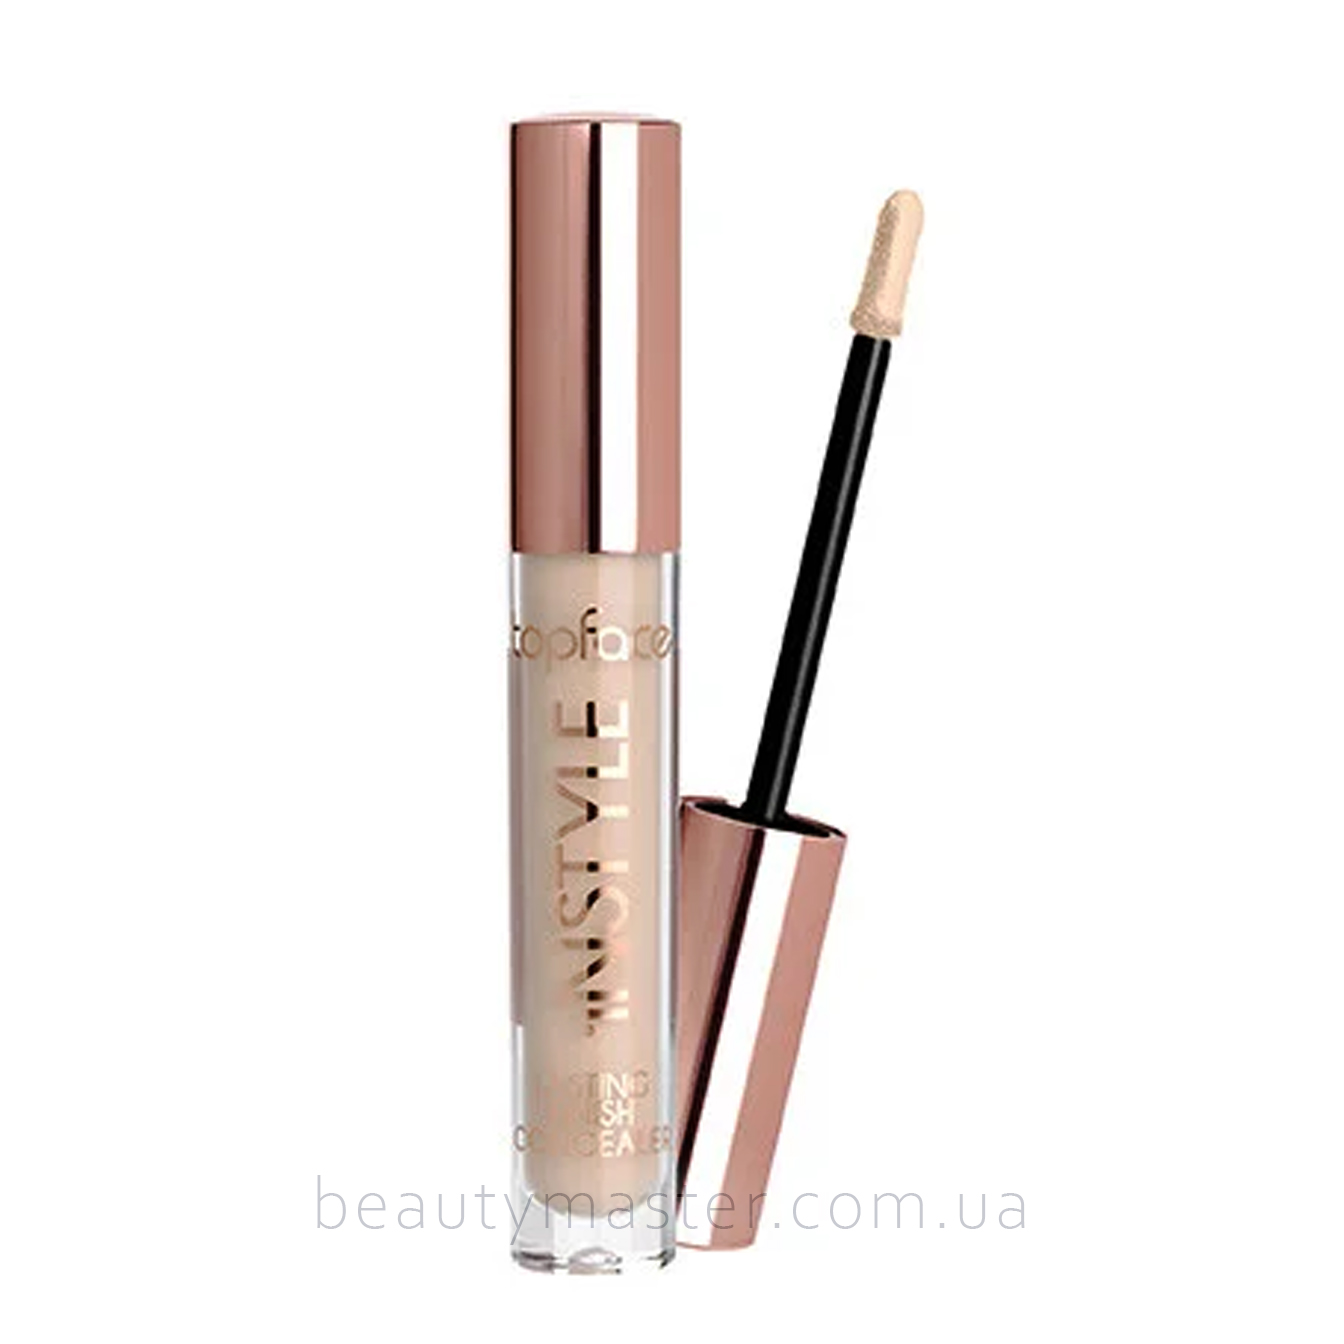 Topface Консилер № 03 LASTING FINISH INSTYLE PT461 3.5мл